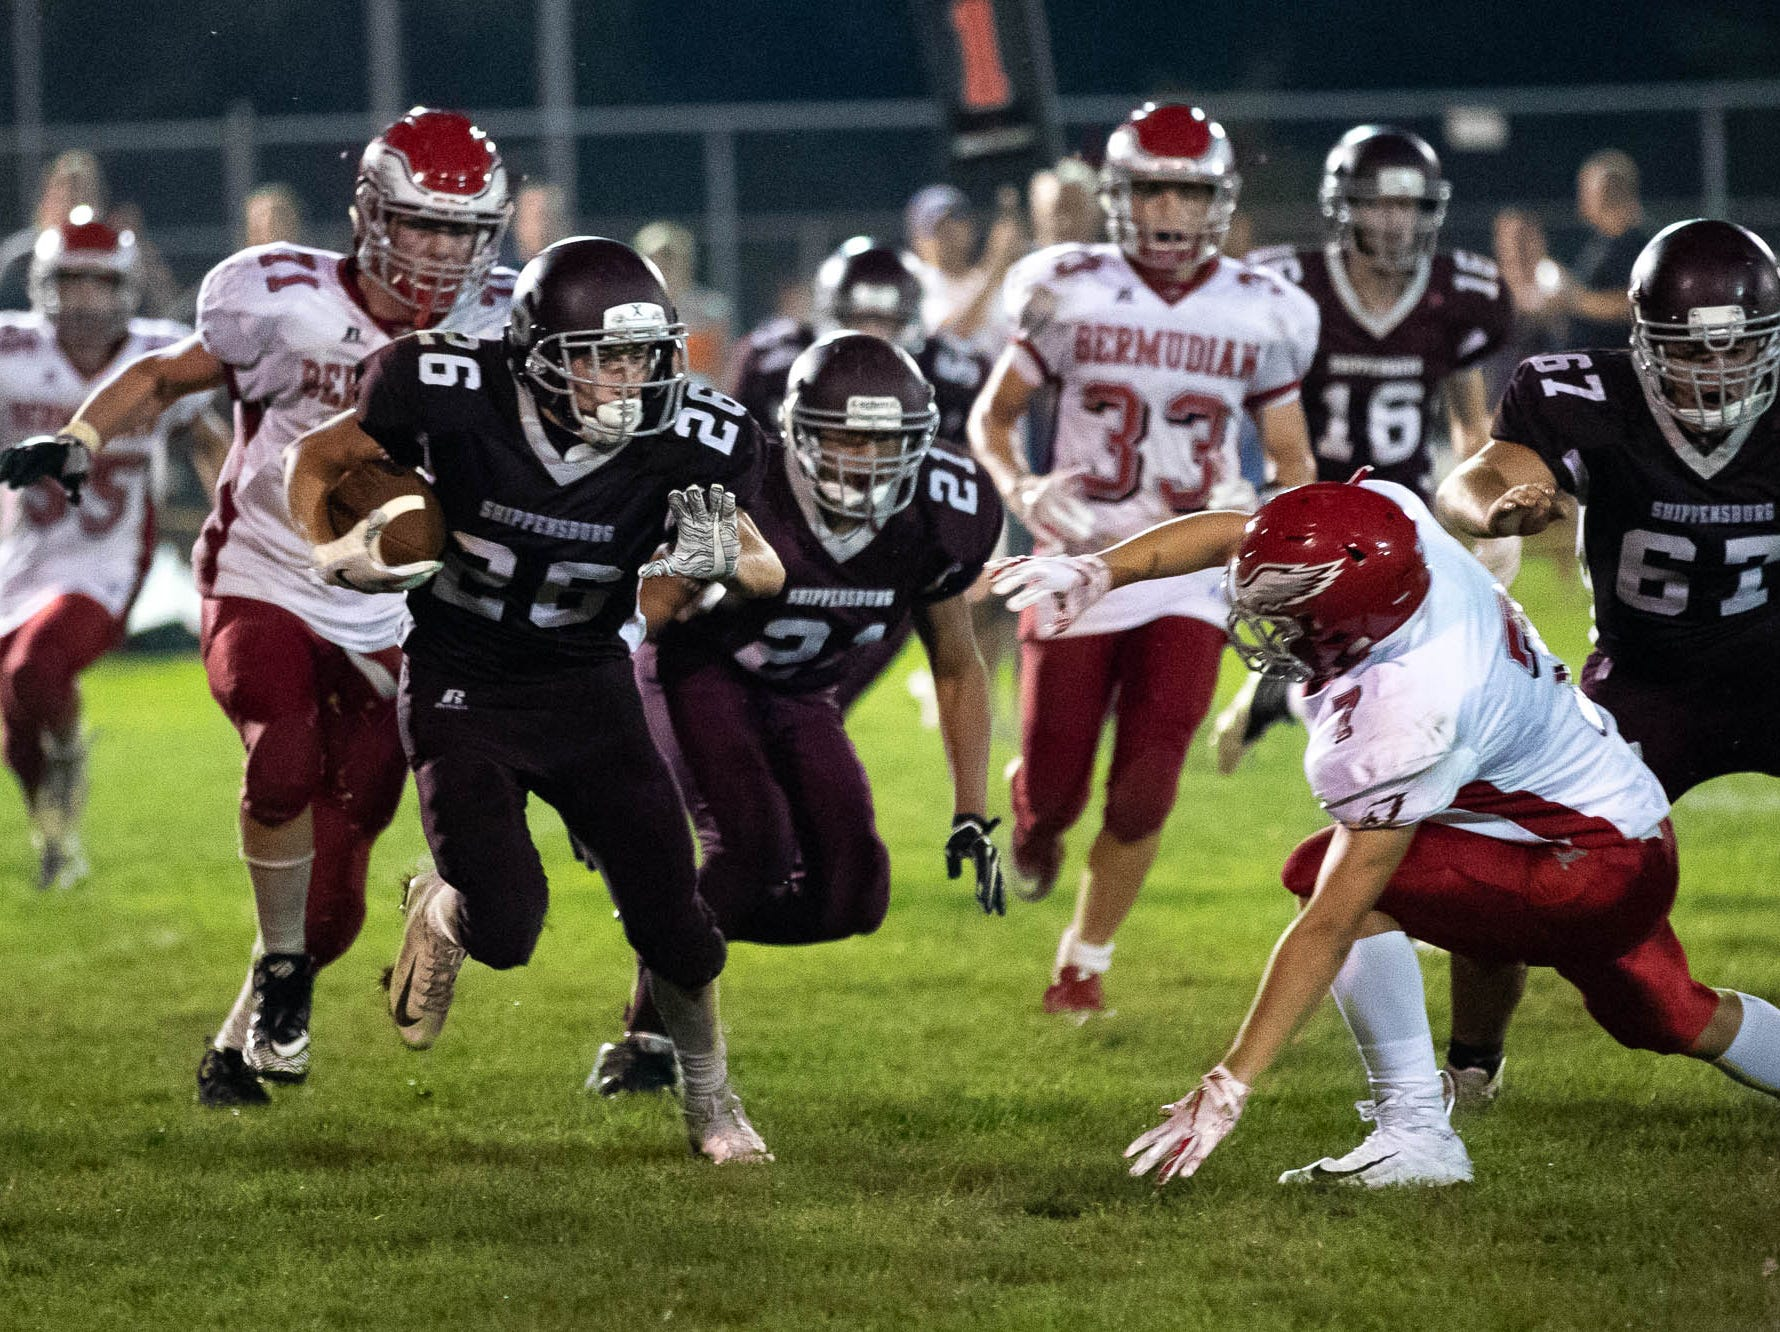 Shippensburg's Alex Sharrow (26) attempts to outrun the Bermudian defense during a football game between Shippensburg and Bermudian Springs, Friday, Sept. 7, 2018, at Shippensburg High School. The Shippensburg Greyhounds defeated the Bermudian Springs Eagles 31-17.